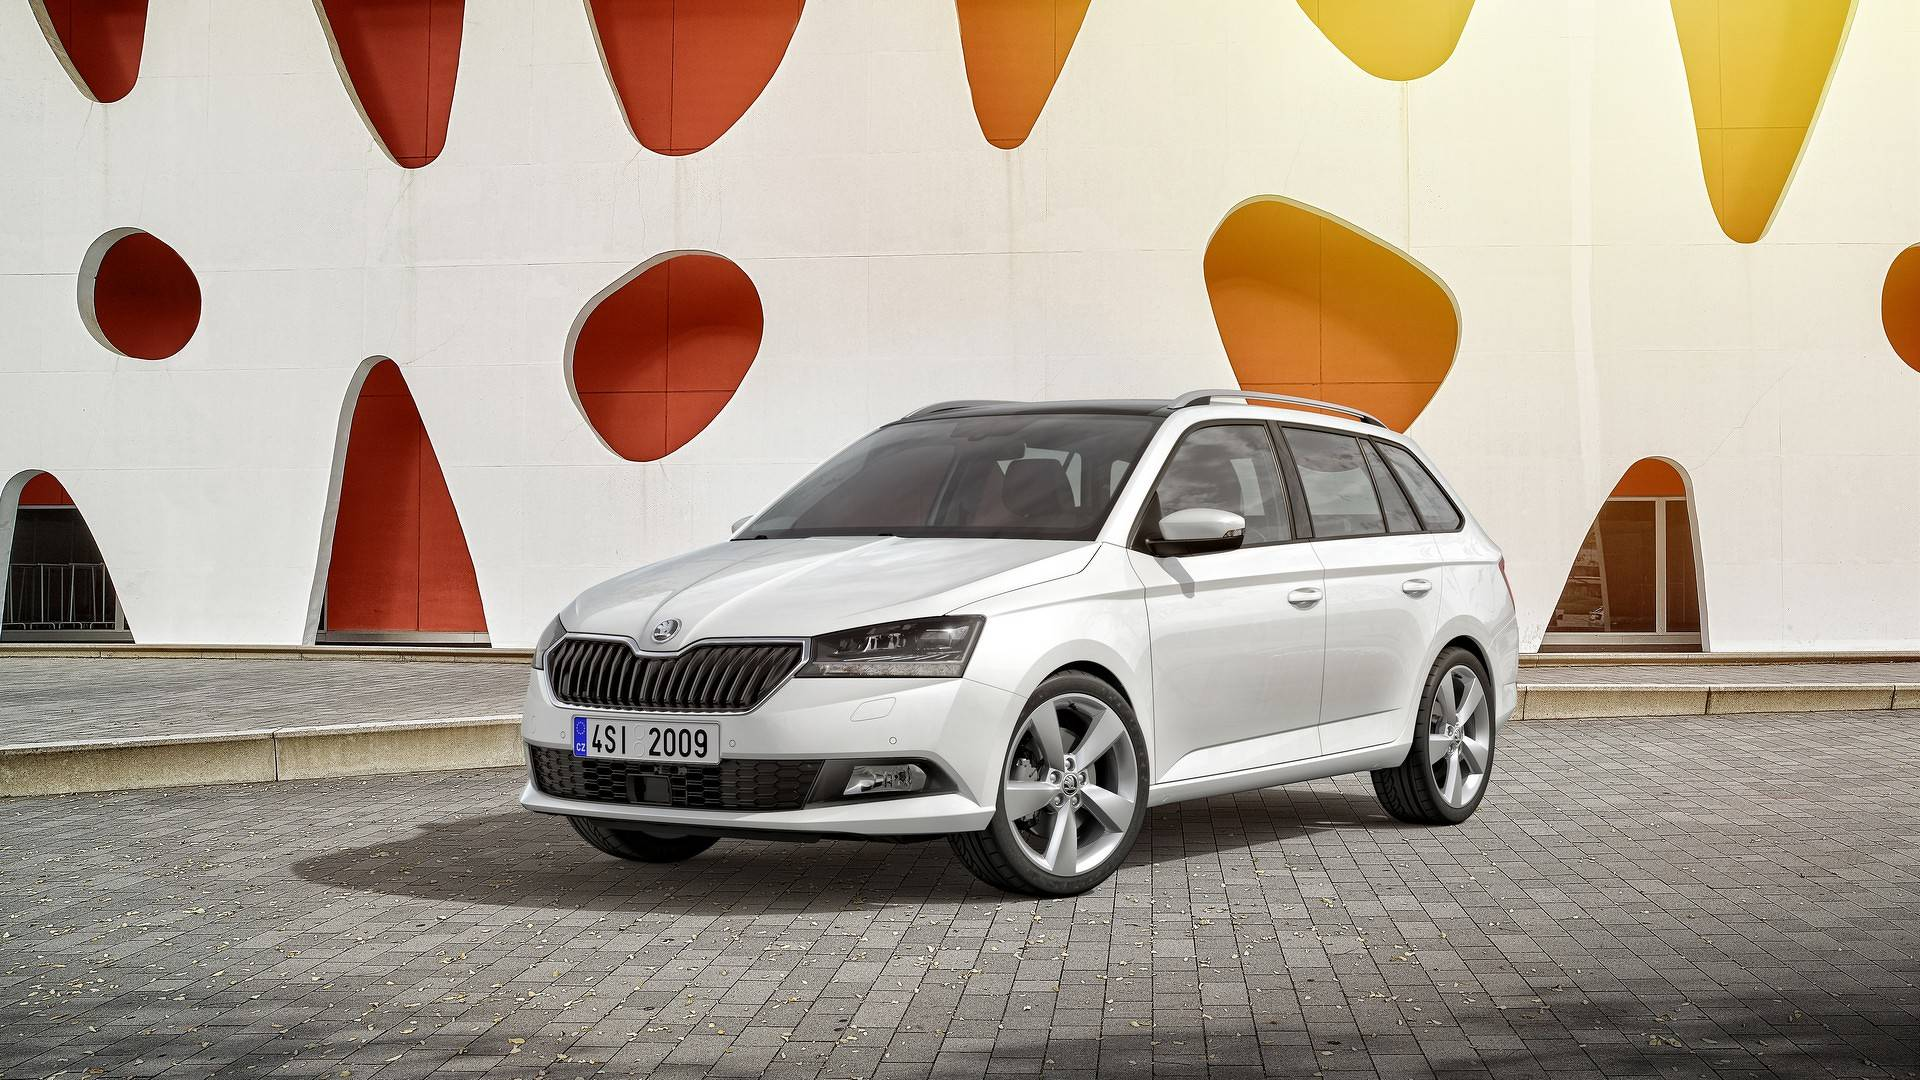 """Speaking in a recent interview, Skoda CEO Thomas Schaefer has confirmed that the next generation of the Fabia model would be coming to the market in 2021. He did not provide any details except for calling it """"an excellent car"""" that the company had """"high hopes for""""."""